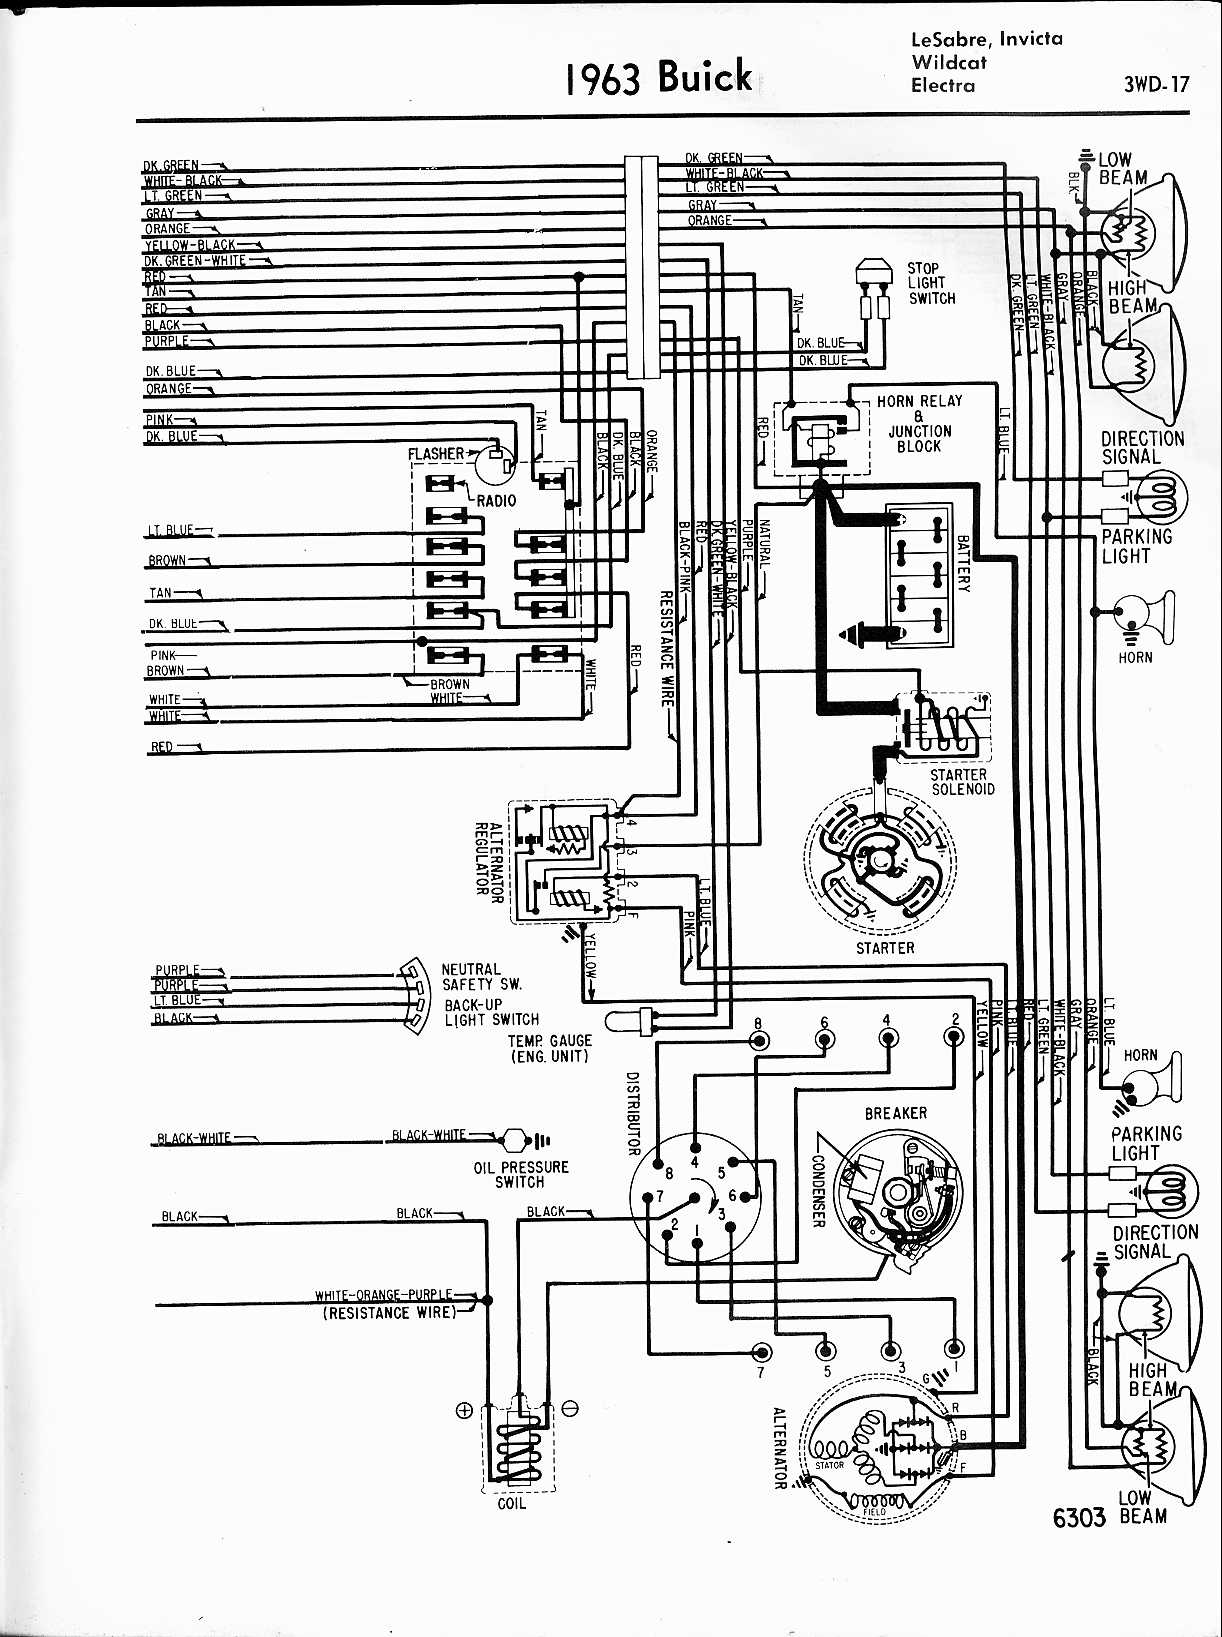 1969 Amx Wiring Diagram Auto Electrical 1974 Amc Javelin 1973 Cuda